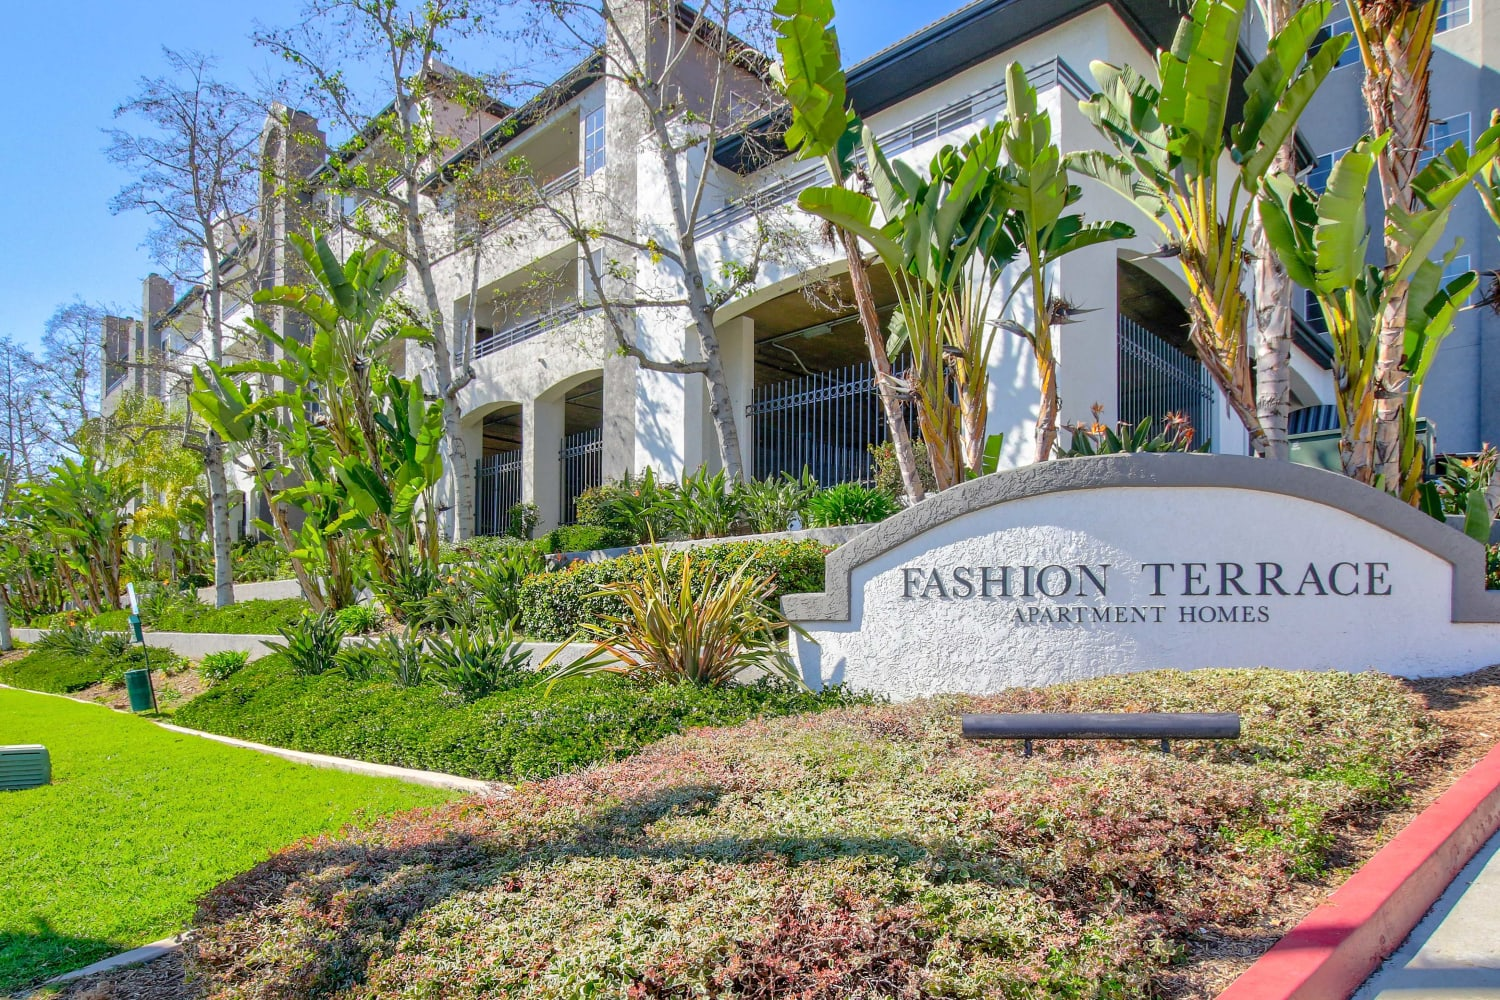 Front entrance sign and manicured grounds at Fashion Terrace in San Diego, California